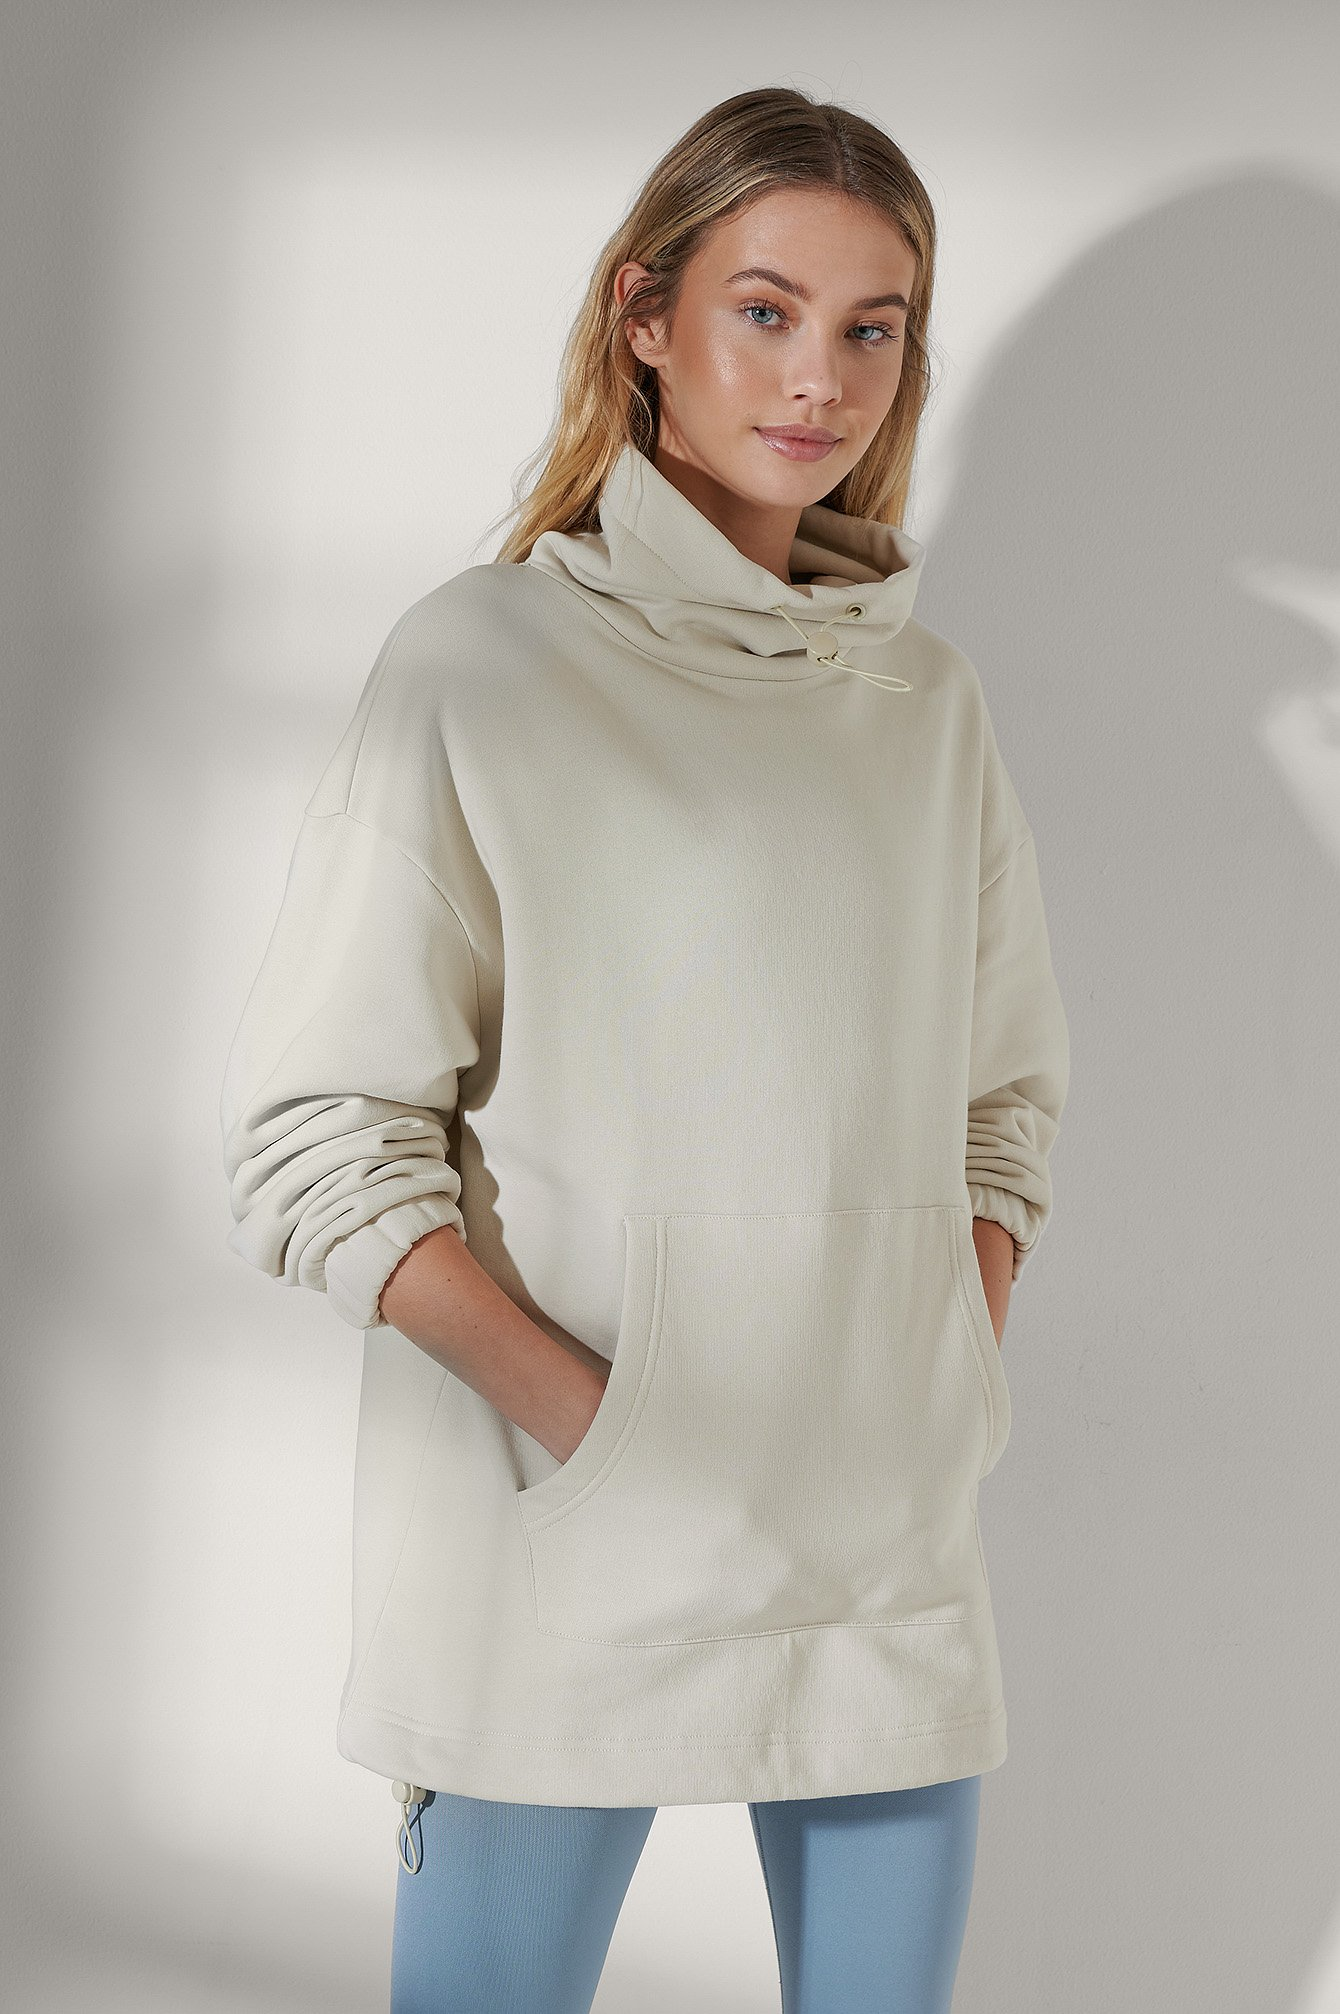 Light Beige Organic Drawstring Neck Sweatshirt